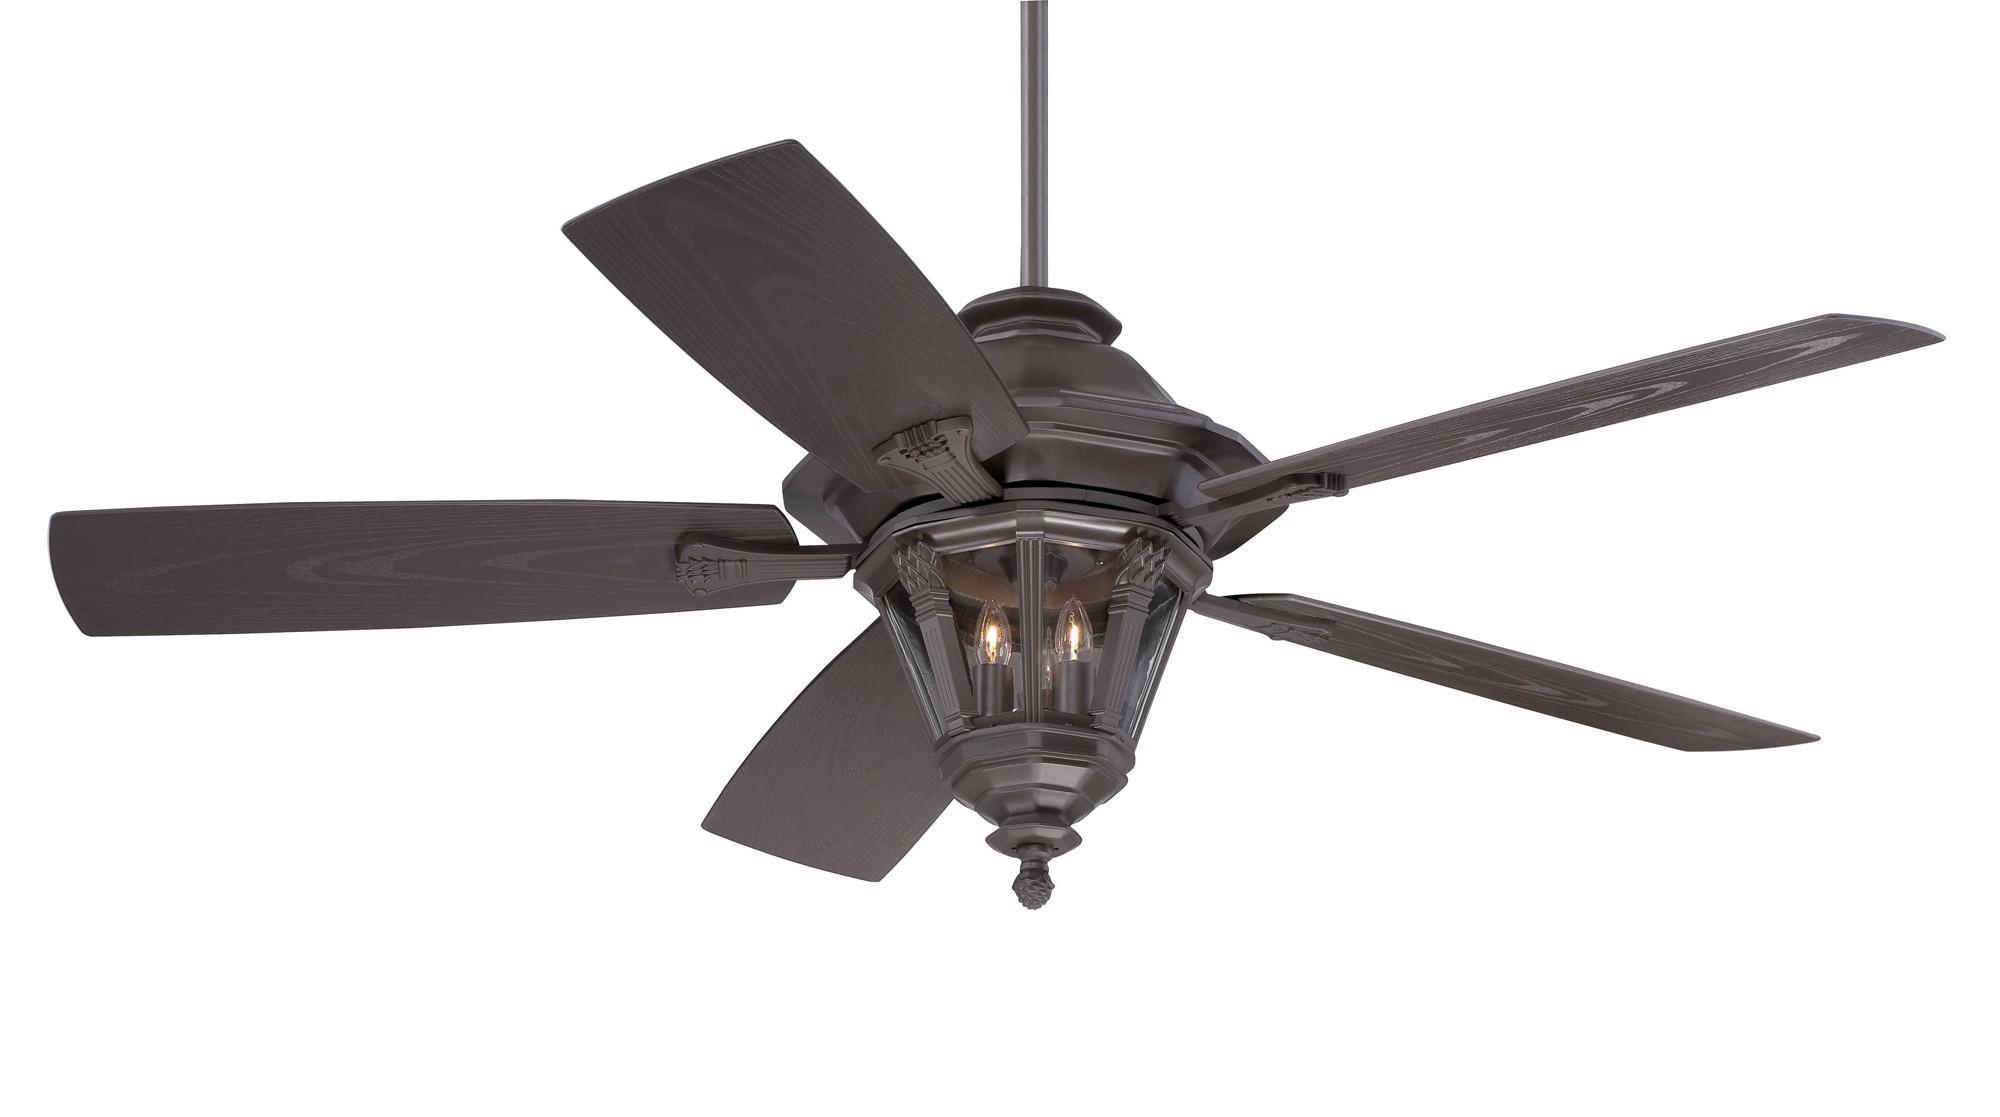 Ceiling: Stunning Outdoor Plug In Ceiling Fan Swag Ceiling Fan Regarding 2018 Low Profile Outdoor Ceiling Fans With Lights (View 3 of 20)